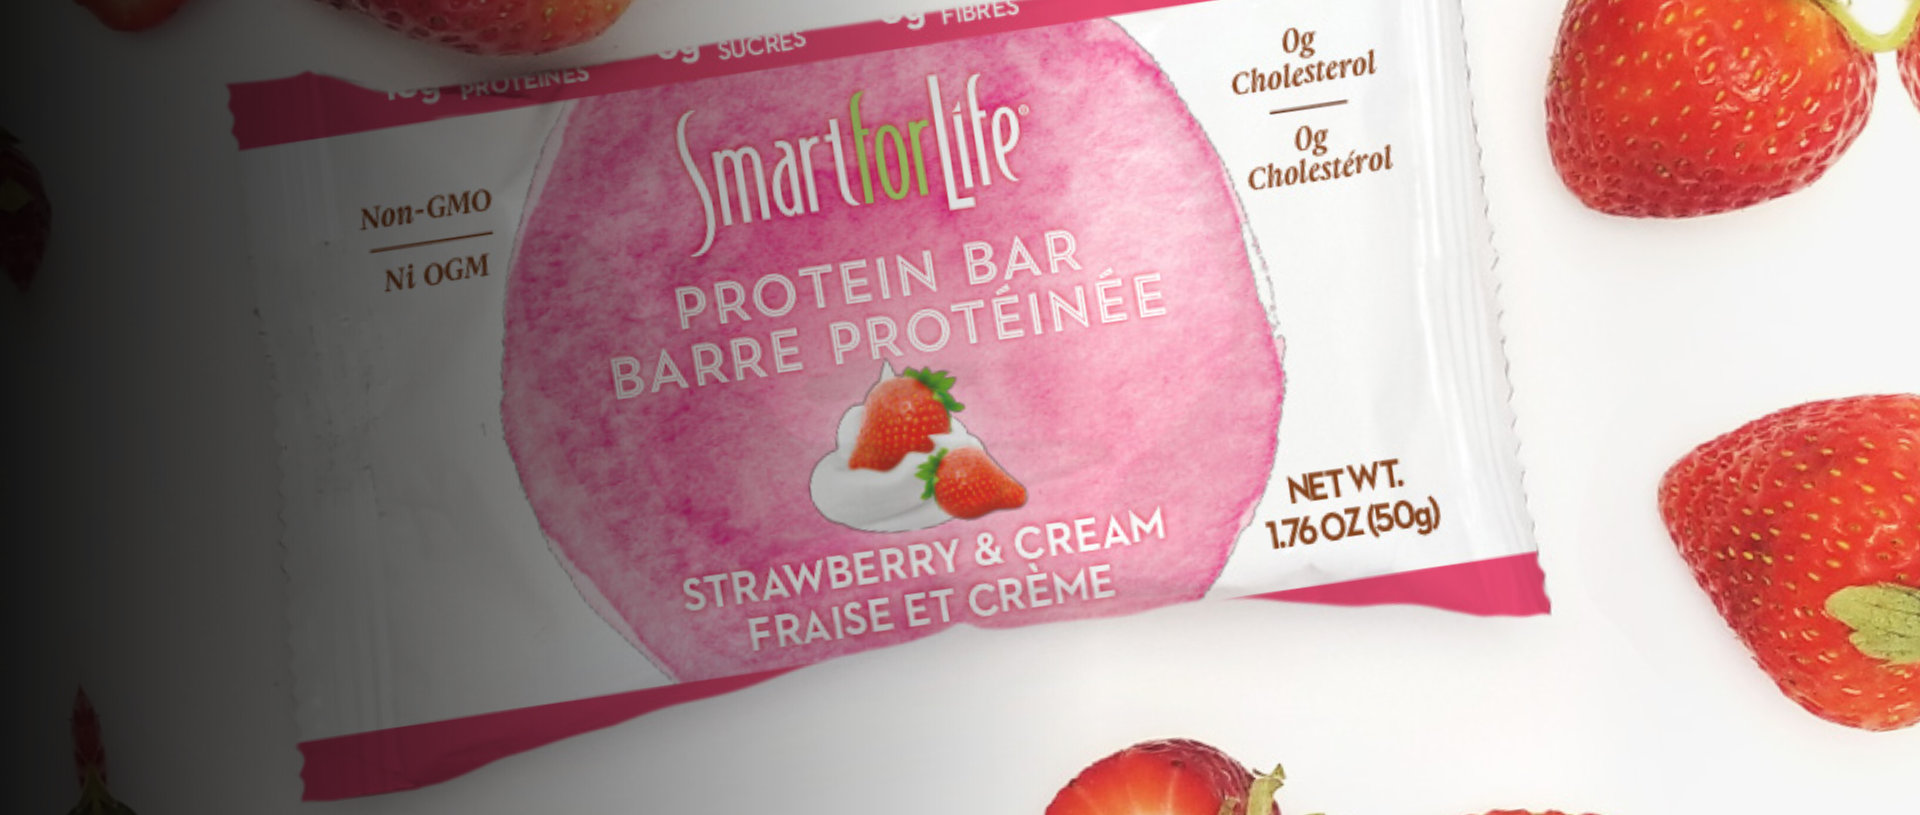 smart for life strawberry and cream flavor